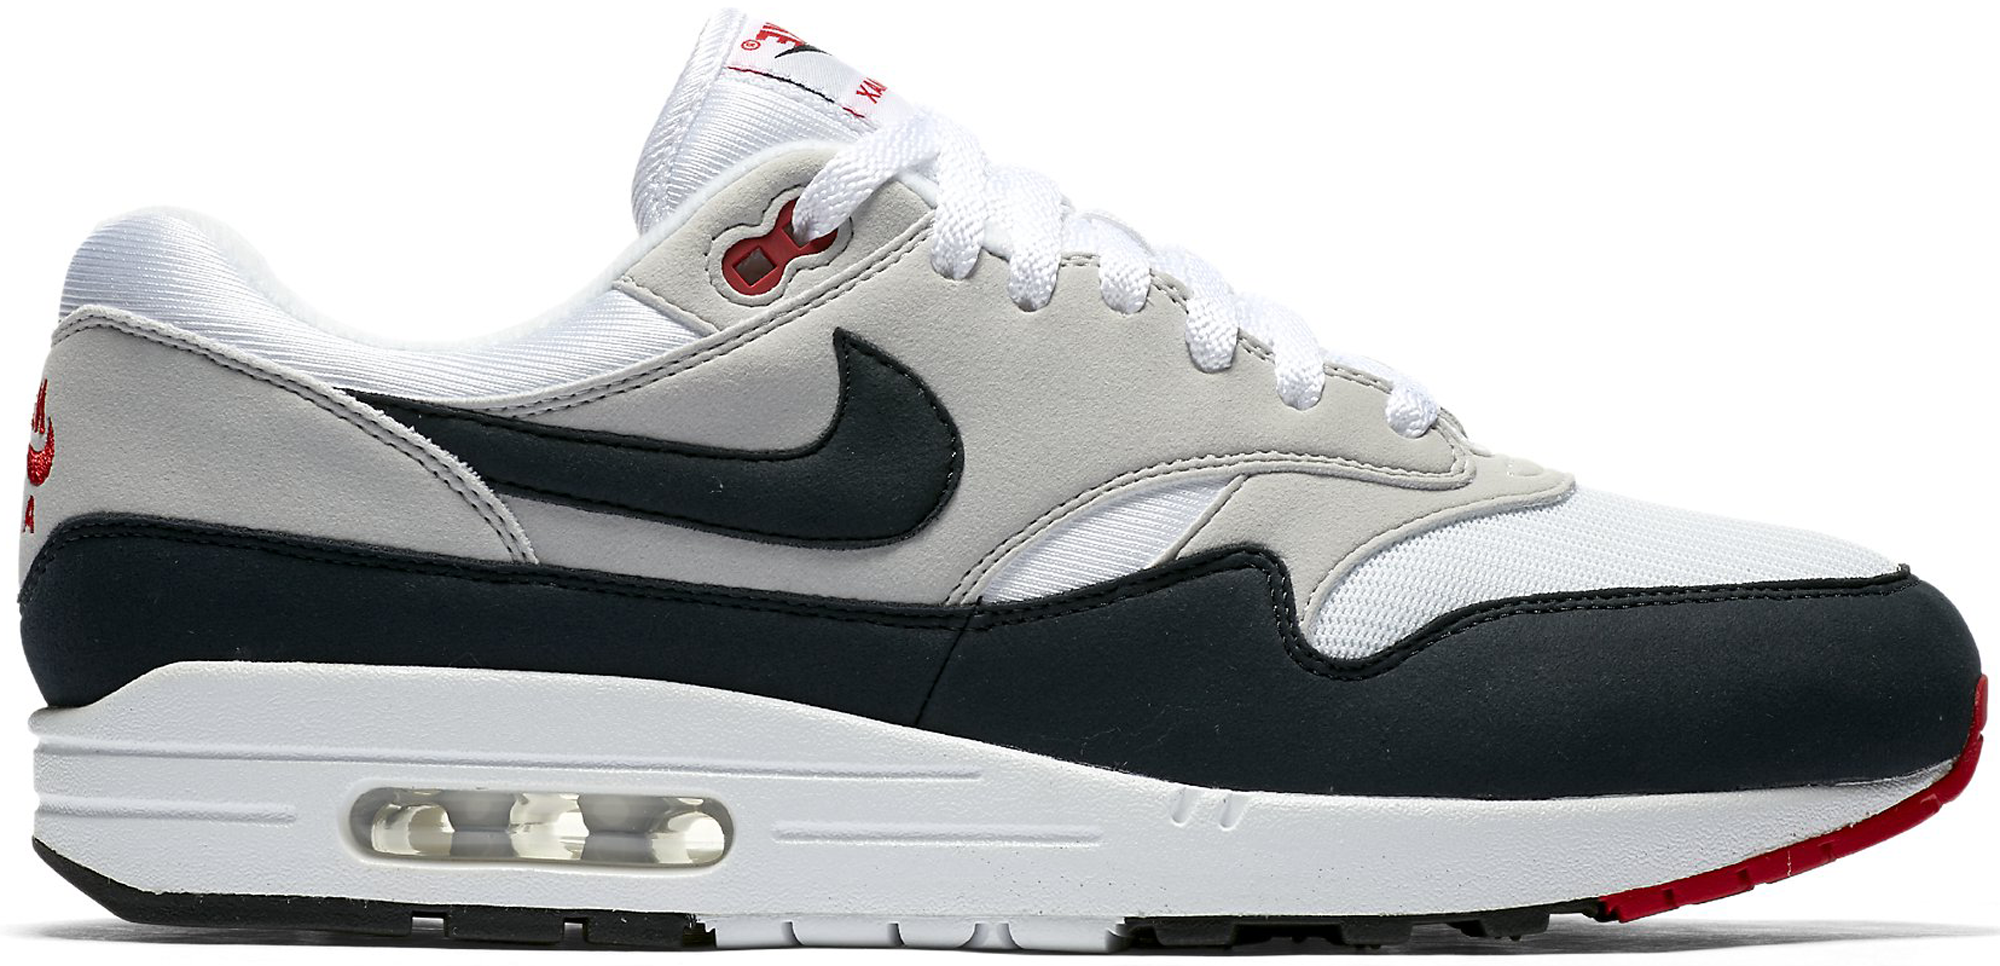 Nike Air Max 1 Anniversary Colorway  White Dark Obsidian-Neutral Grey-Black  Style  908375-104. Release Date  12.15.17 d156093f1